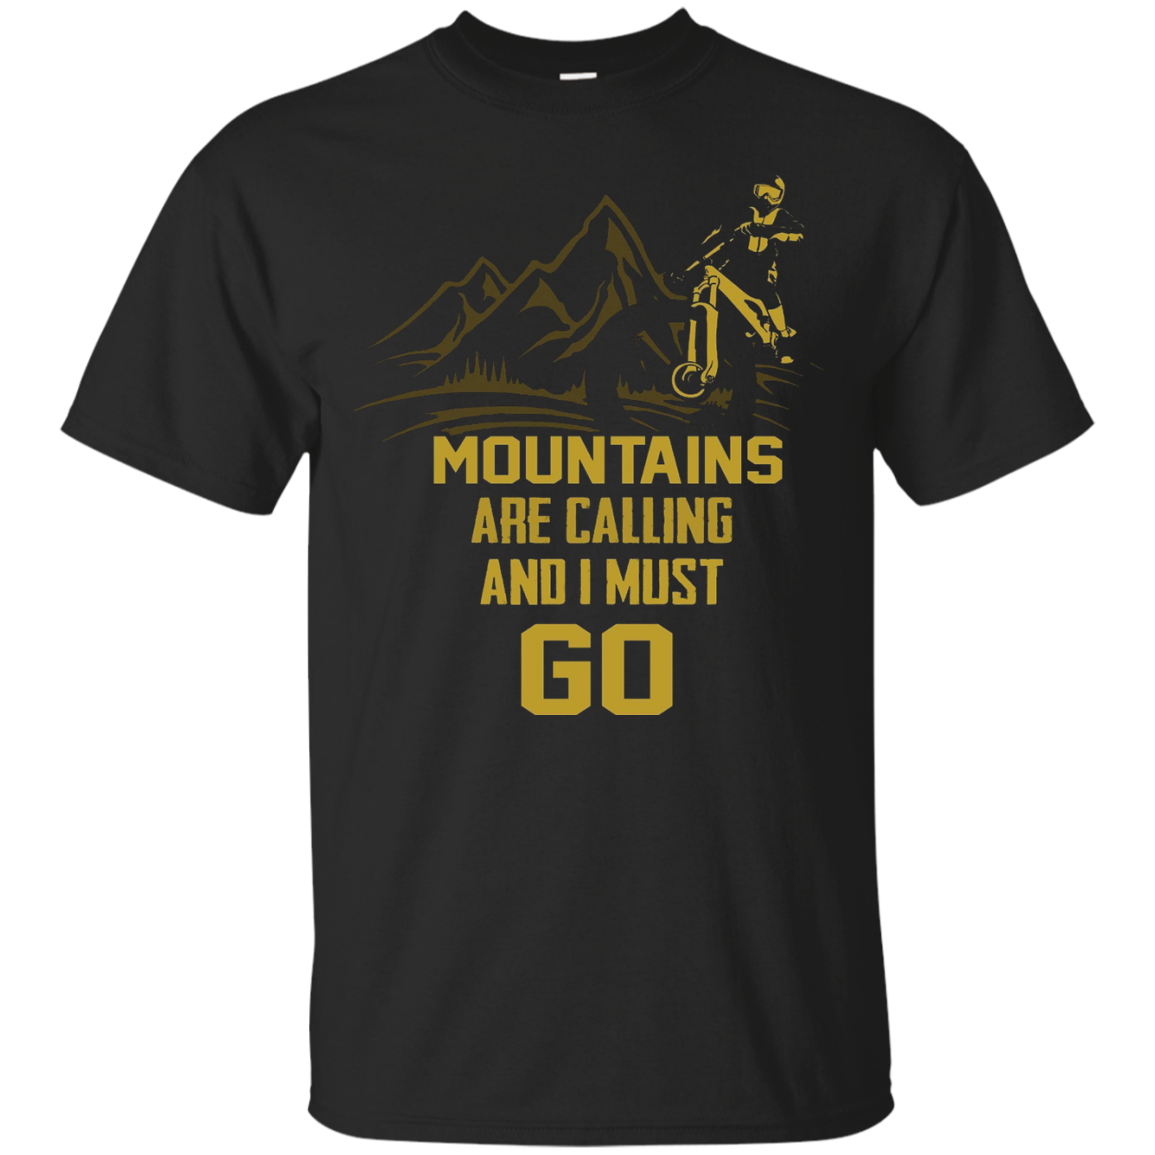 Mountains Are Calling And I Must Go, Mountain Bike T-Shirt